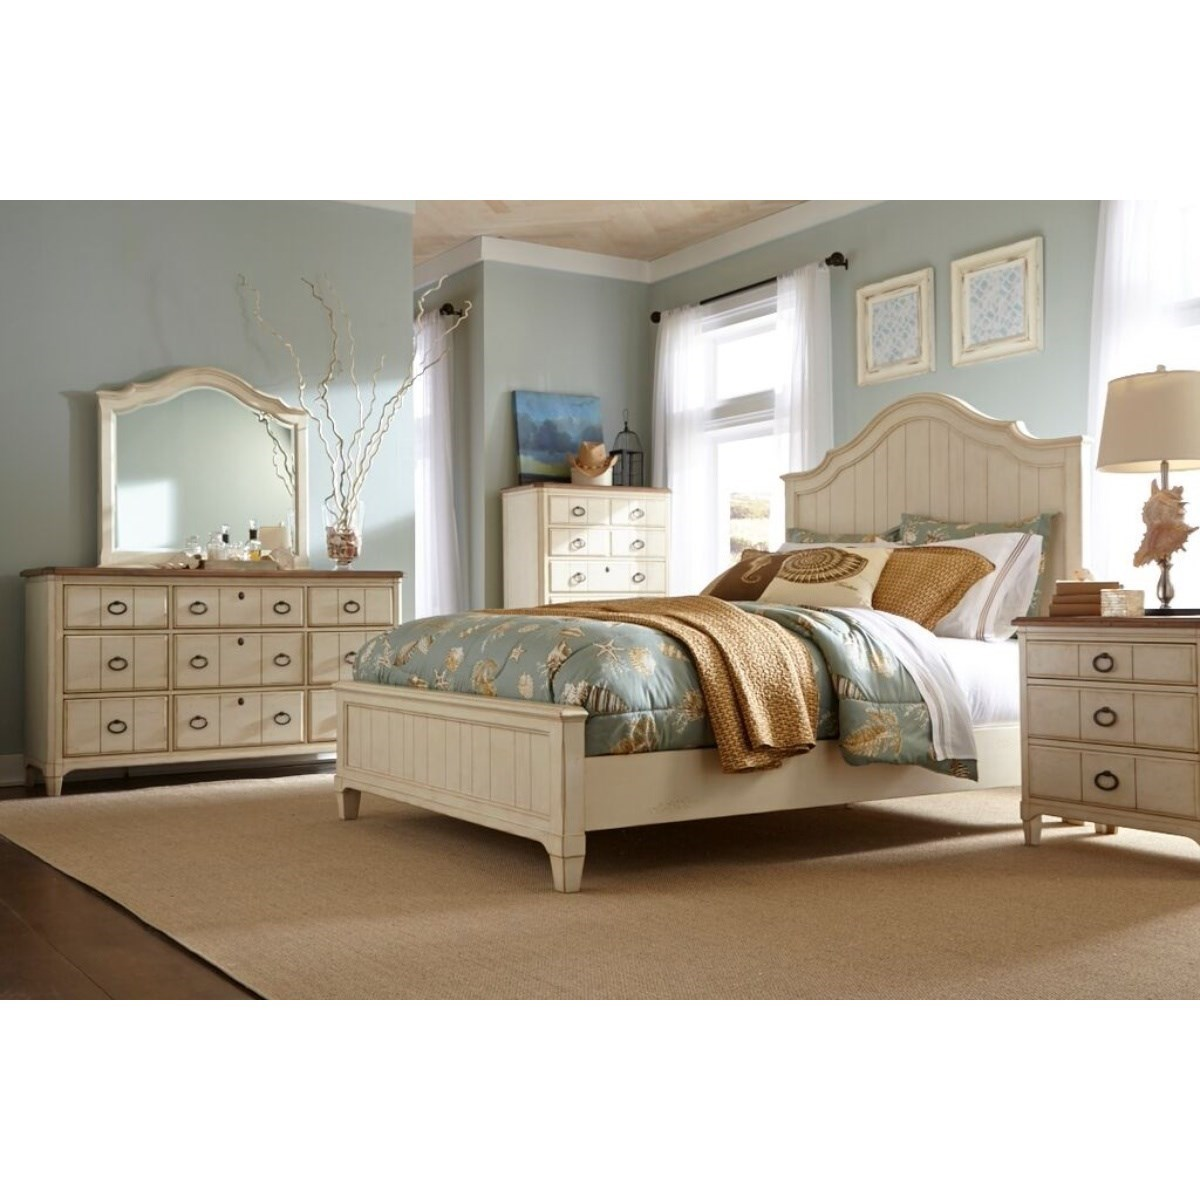 Millbrook Queen Bedroom Group by Panama Jack by Palmetto Home at Baer's Furniture